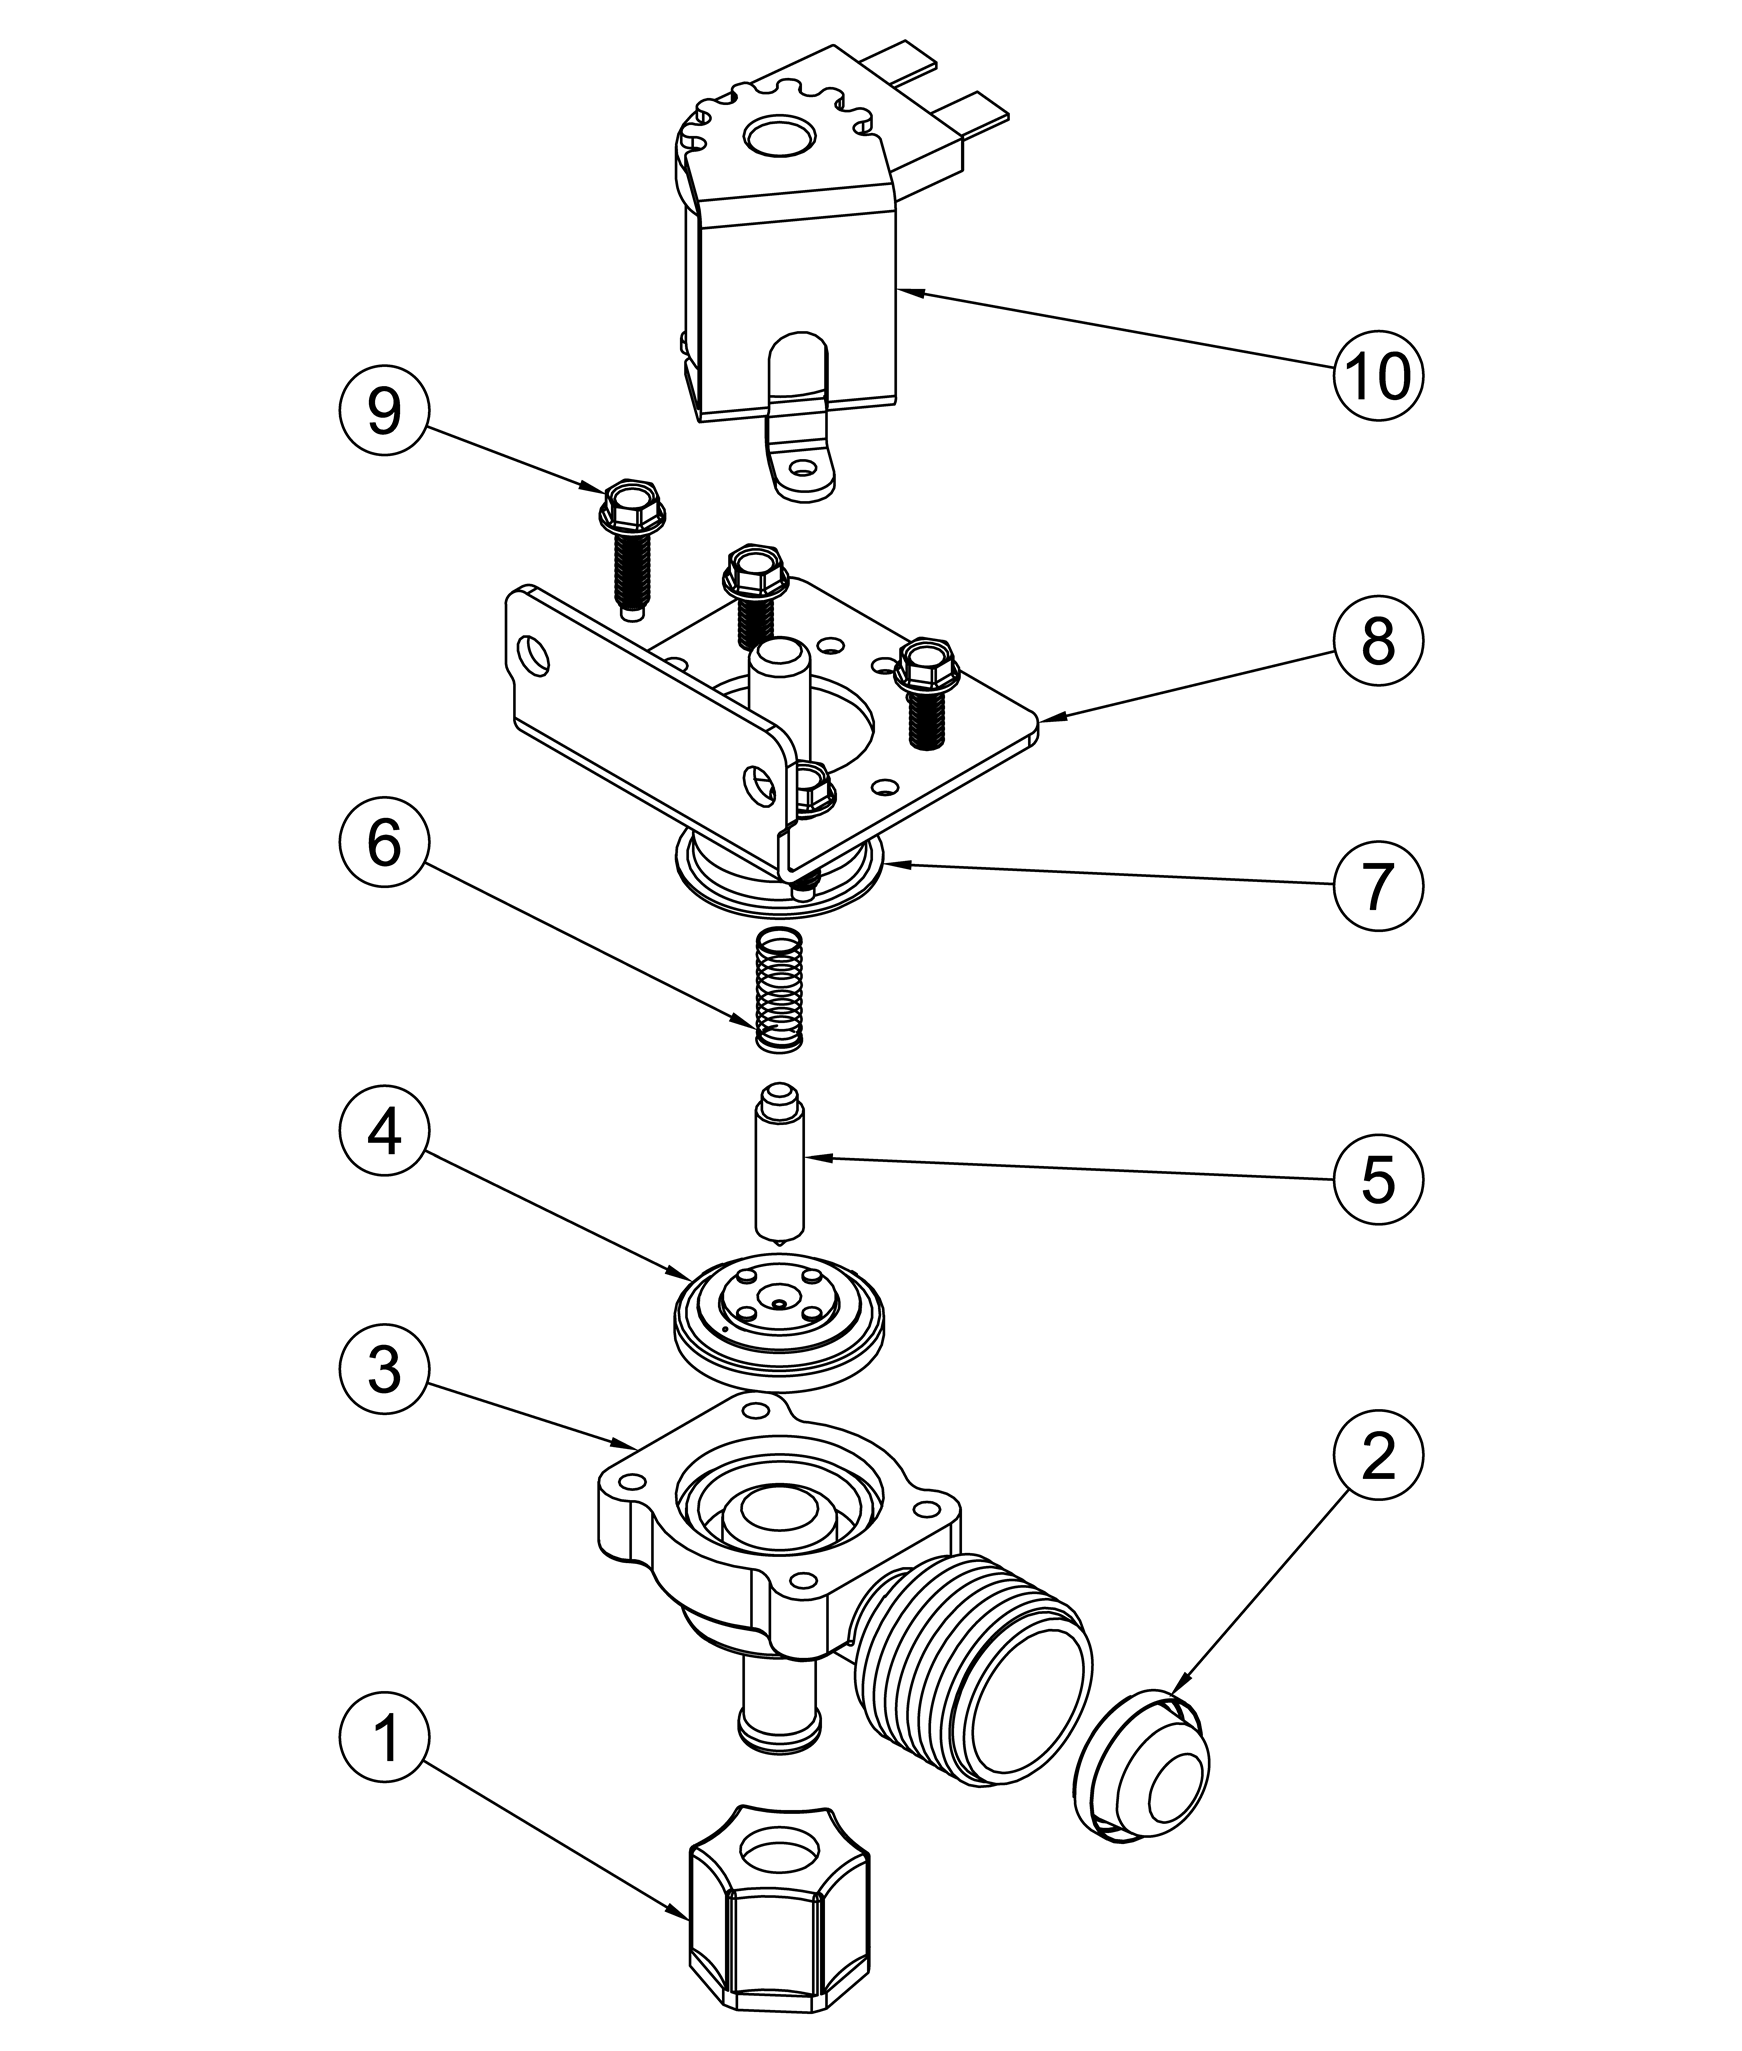 diagram of solenoid circuit electricity site 24 Volt System Wiring Diagram solenoid valve plastic 1 temp 24v willoughby industries